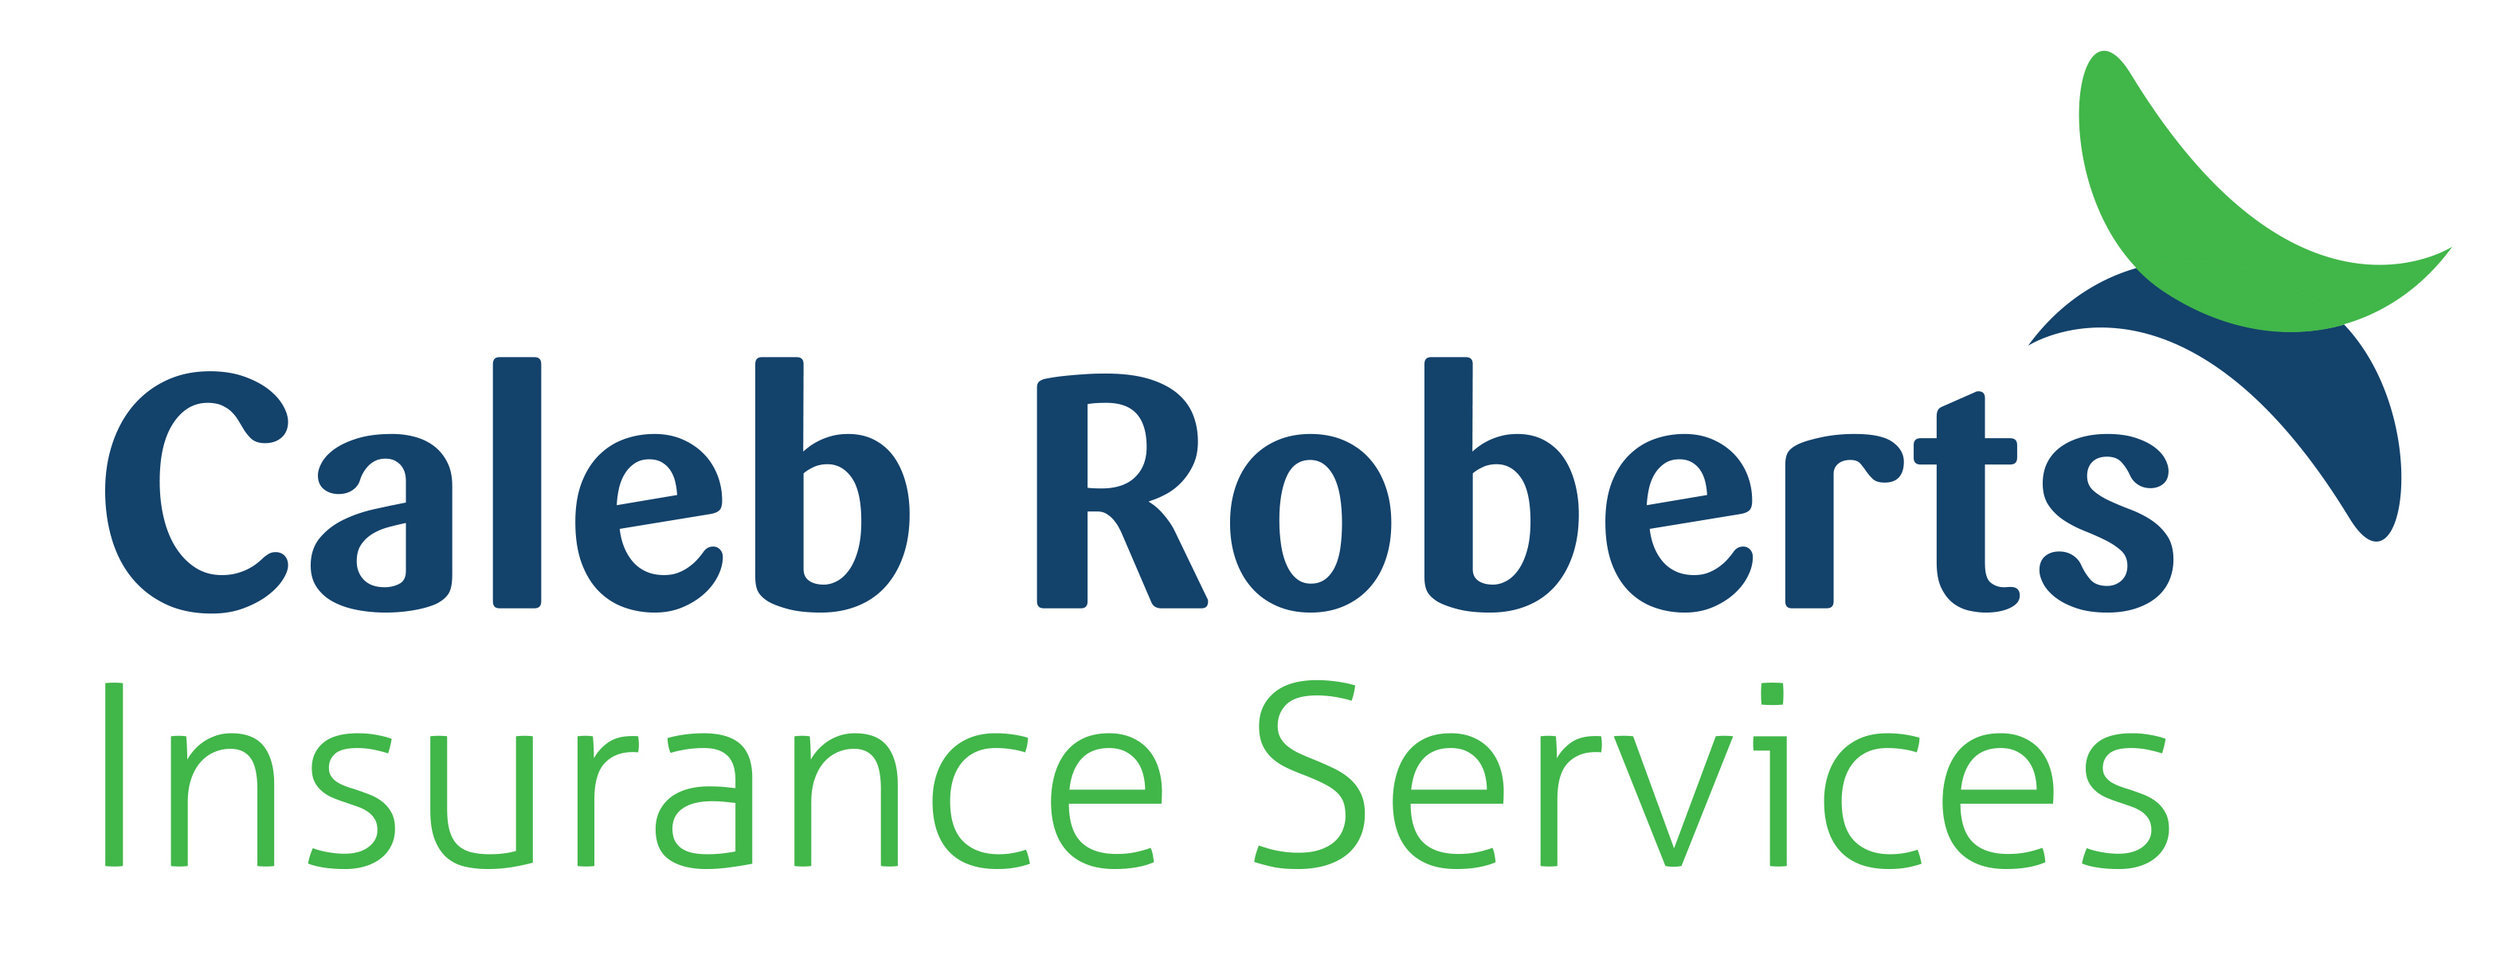 Click on the logo to head to the Caleb Roberts website.